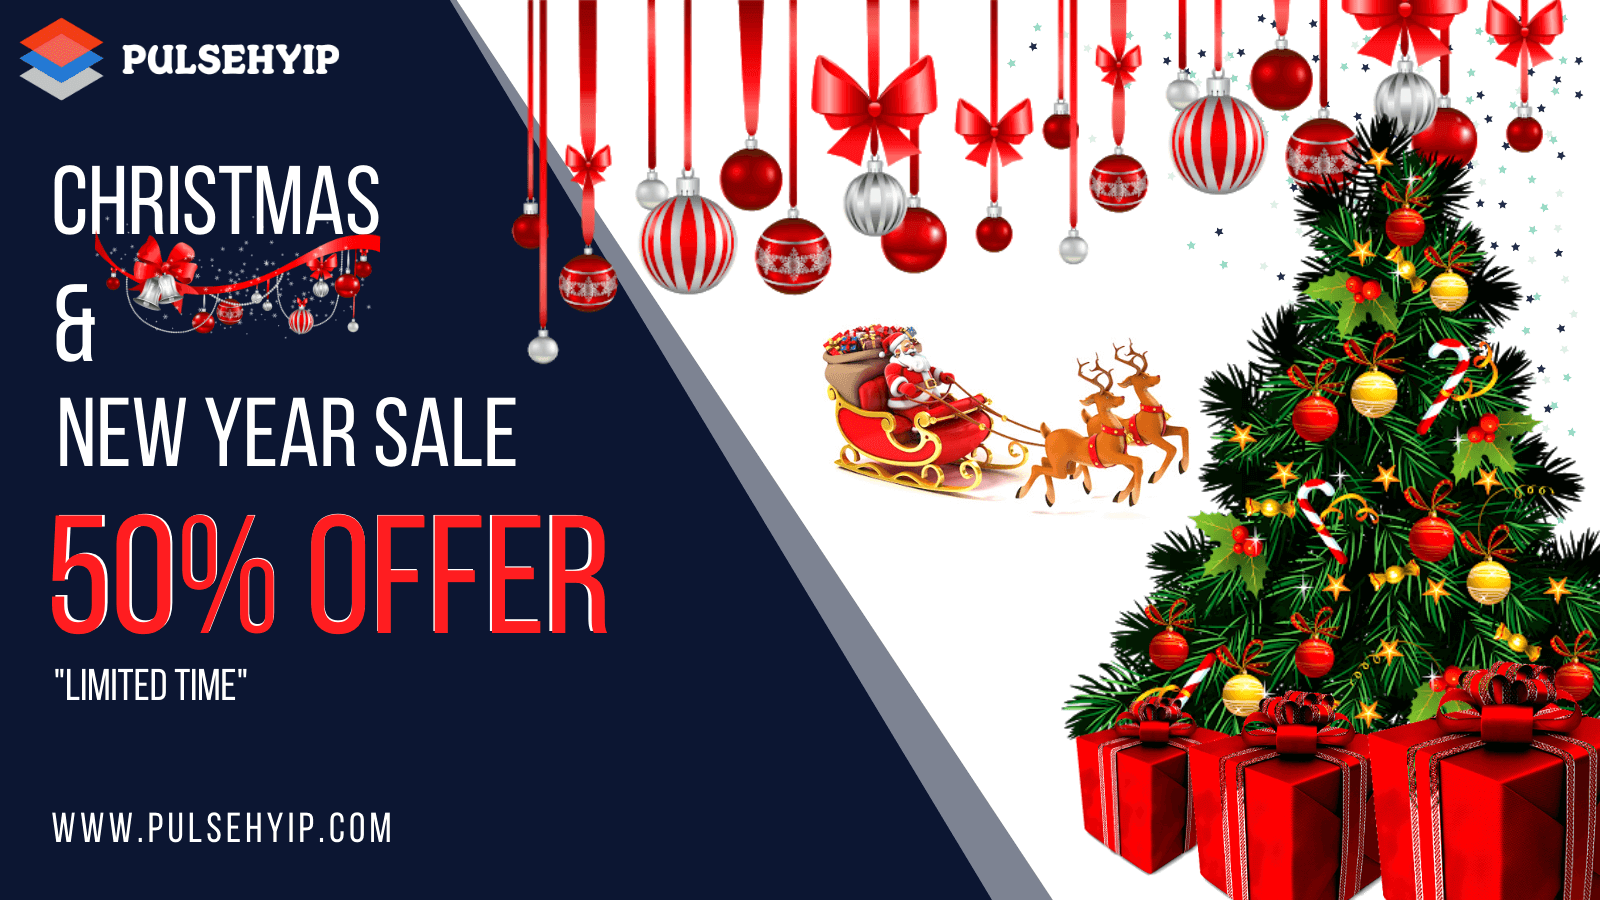 Amazing Christmas and New Year Sale Offers From Pulsehyip